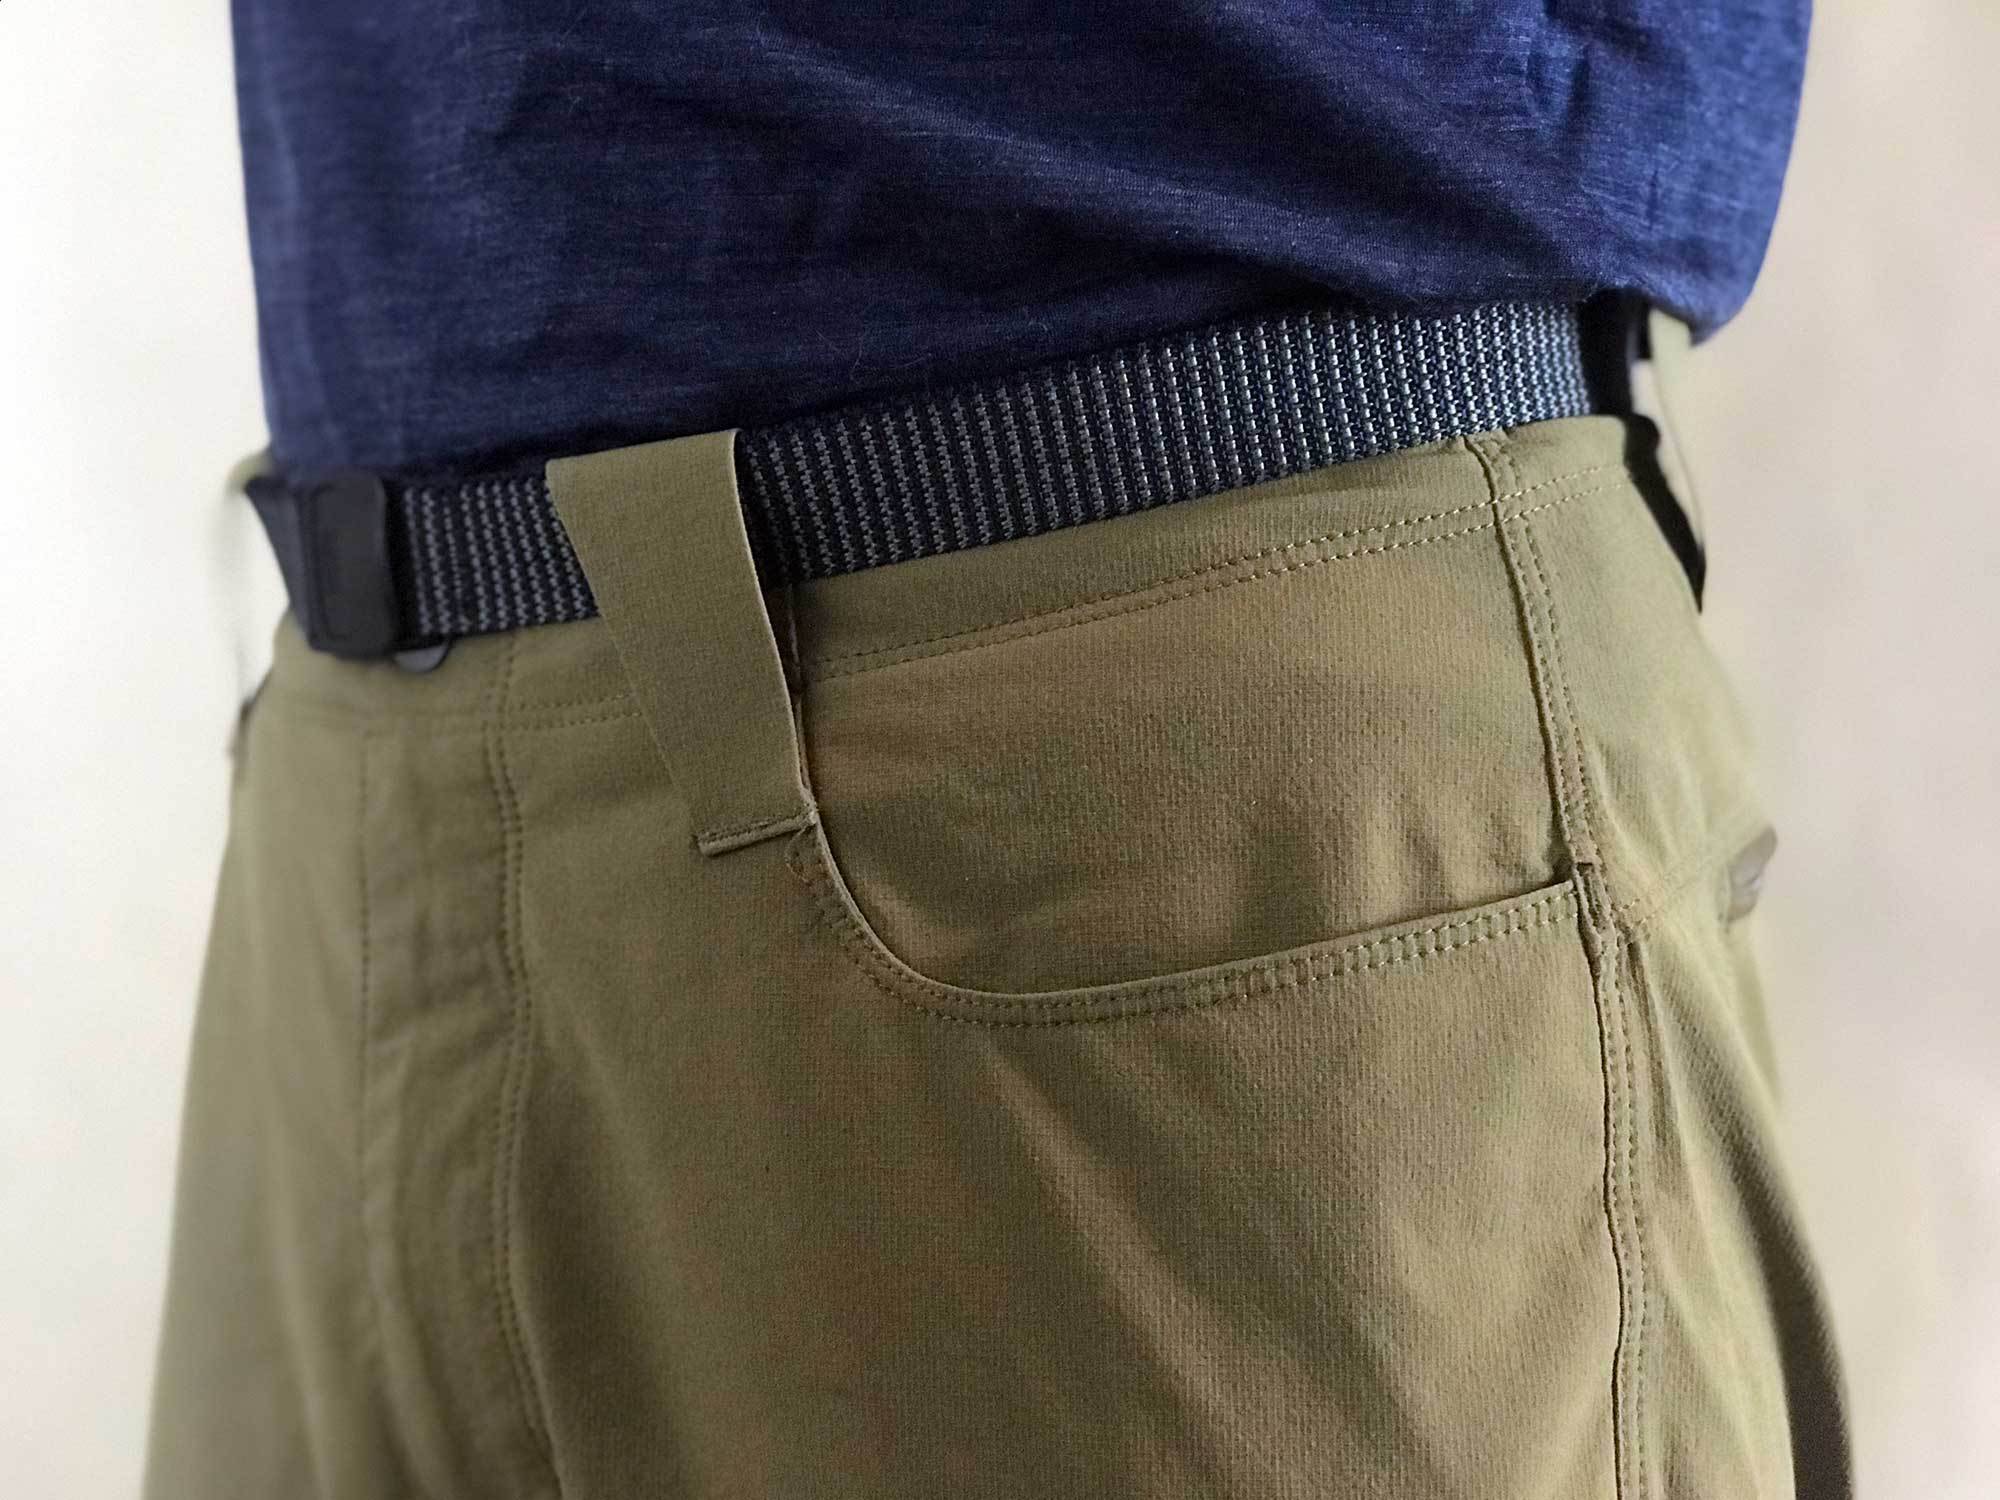 Front stash pockets are effective when hiking, but in certain seated positions, items can easily slide out due to the slick interior lining.